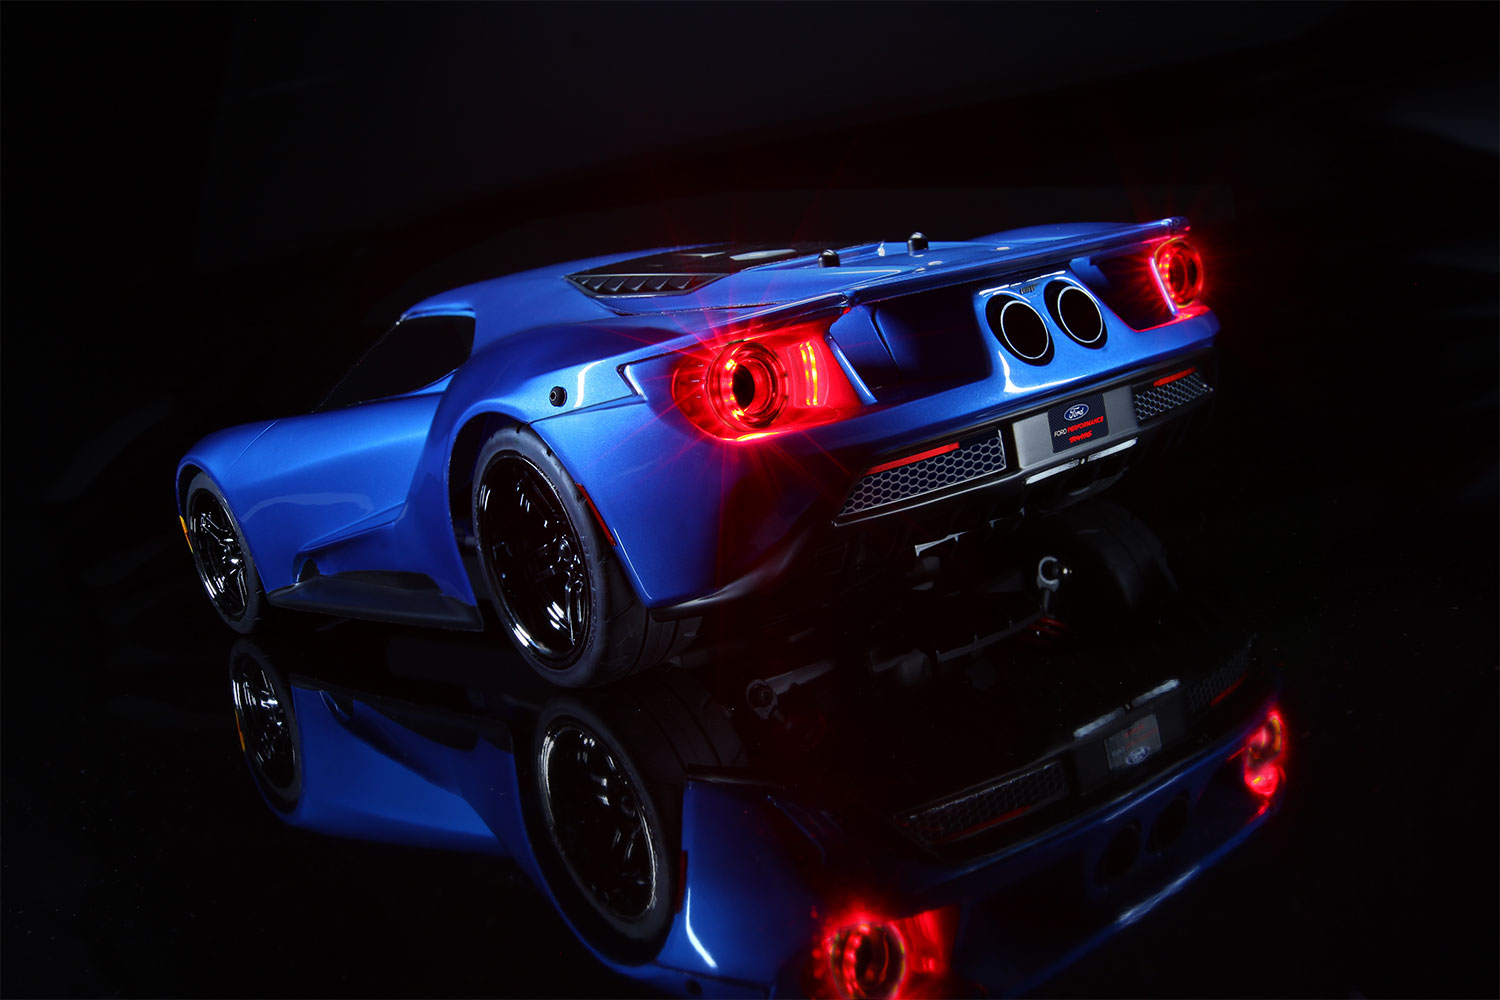 Ford Gt Led Lights Wiring Diagrams Schematics Diagram Daihatsu Taft Rocky Just Arrived Painted Bodies And Traxxas 12